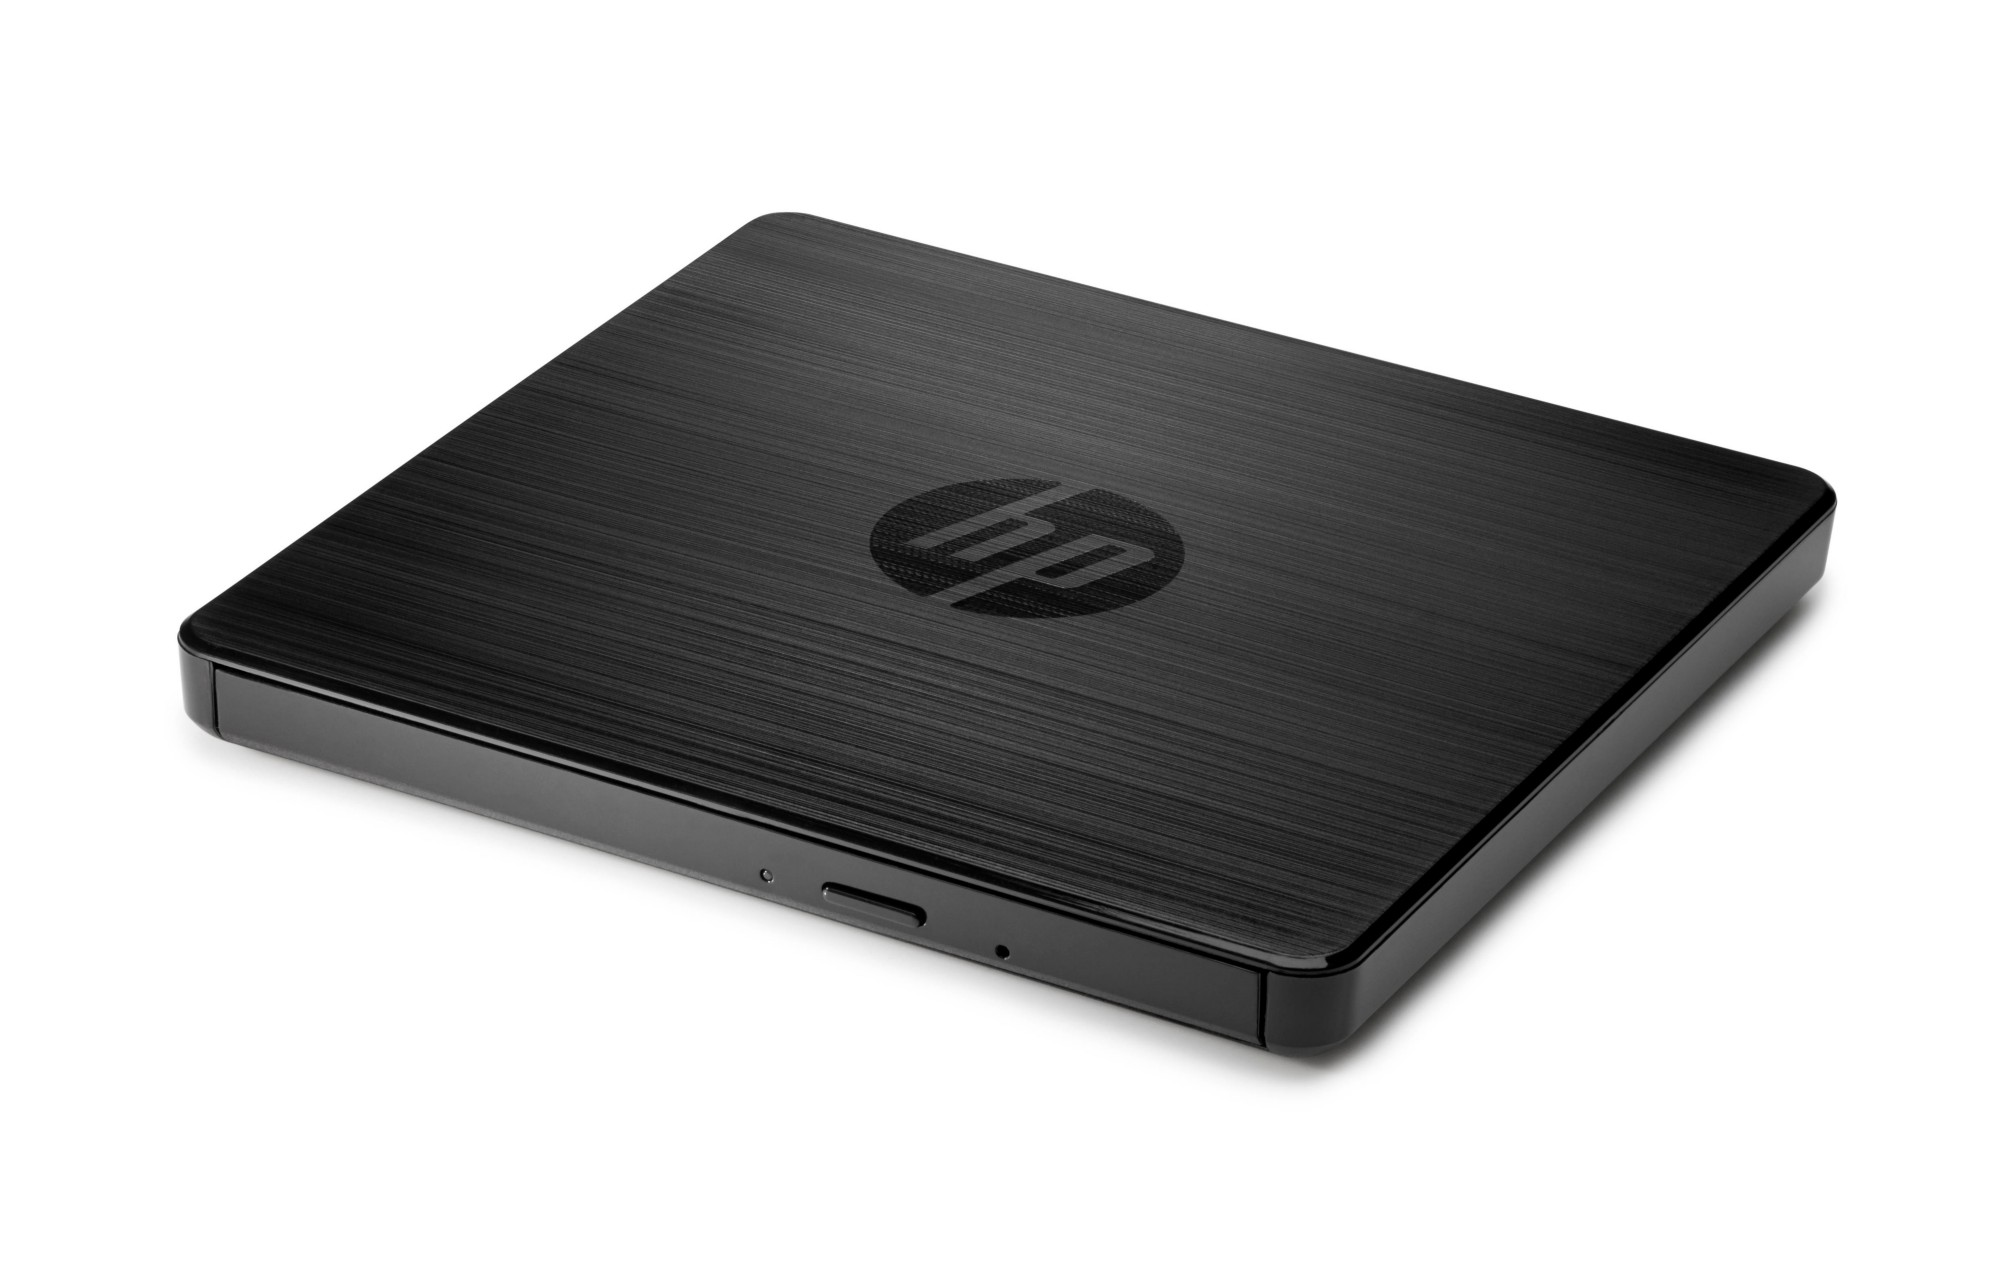 HP External USB DVDRW Drive optical disc drive